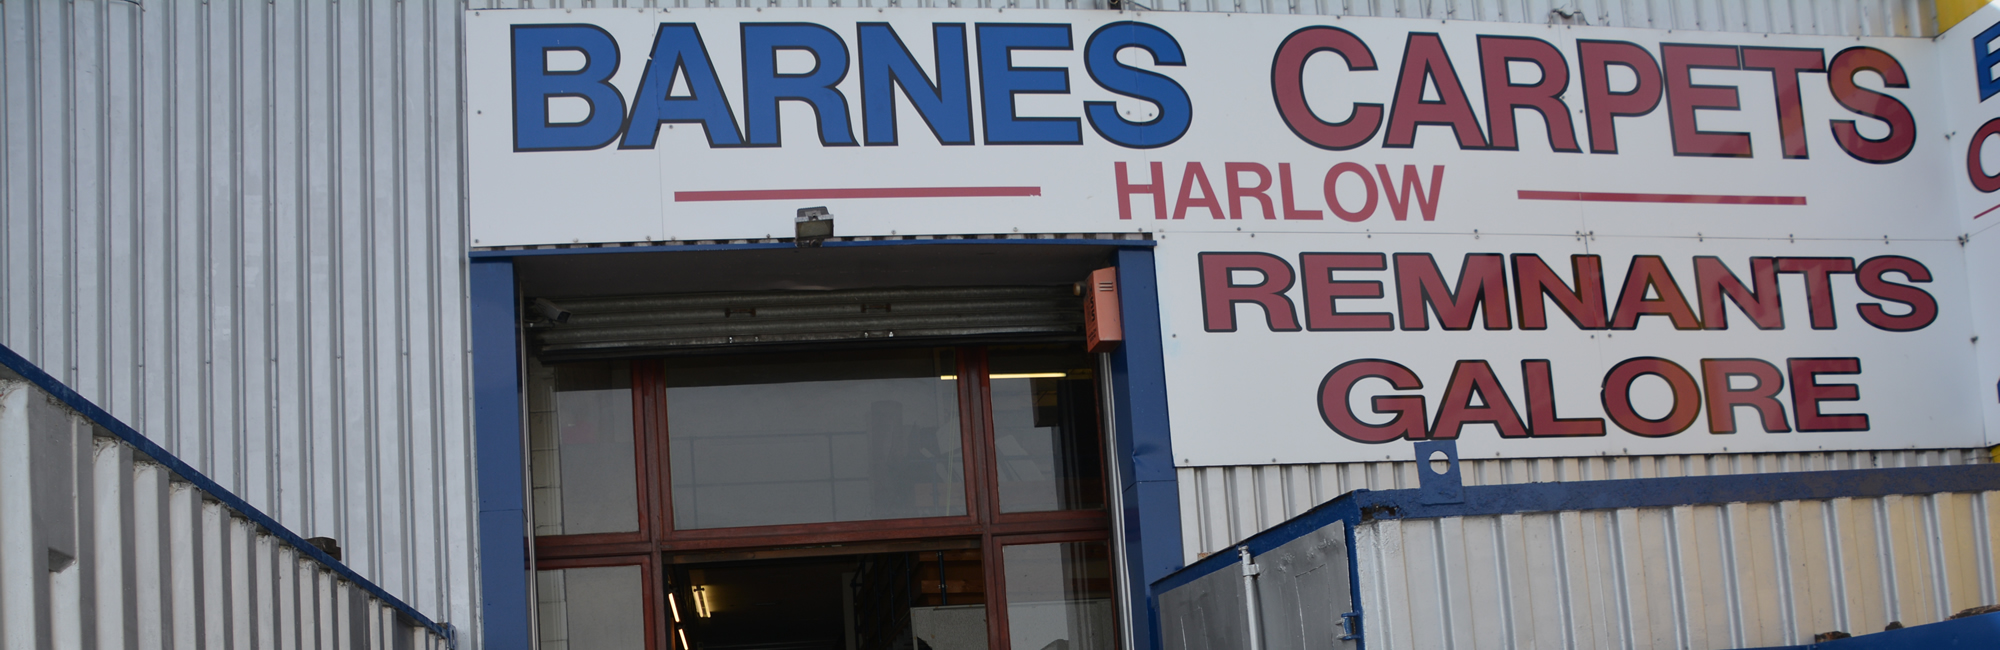 Barnes Carpets of Harlow